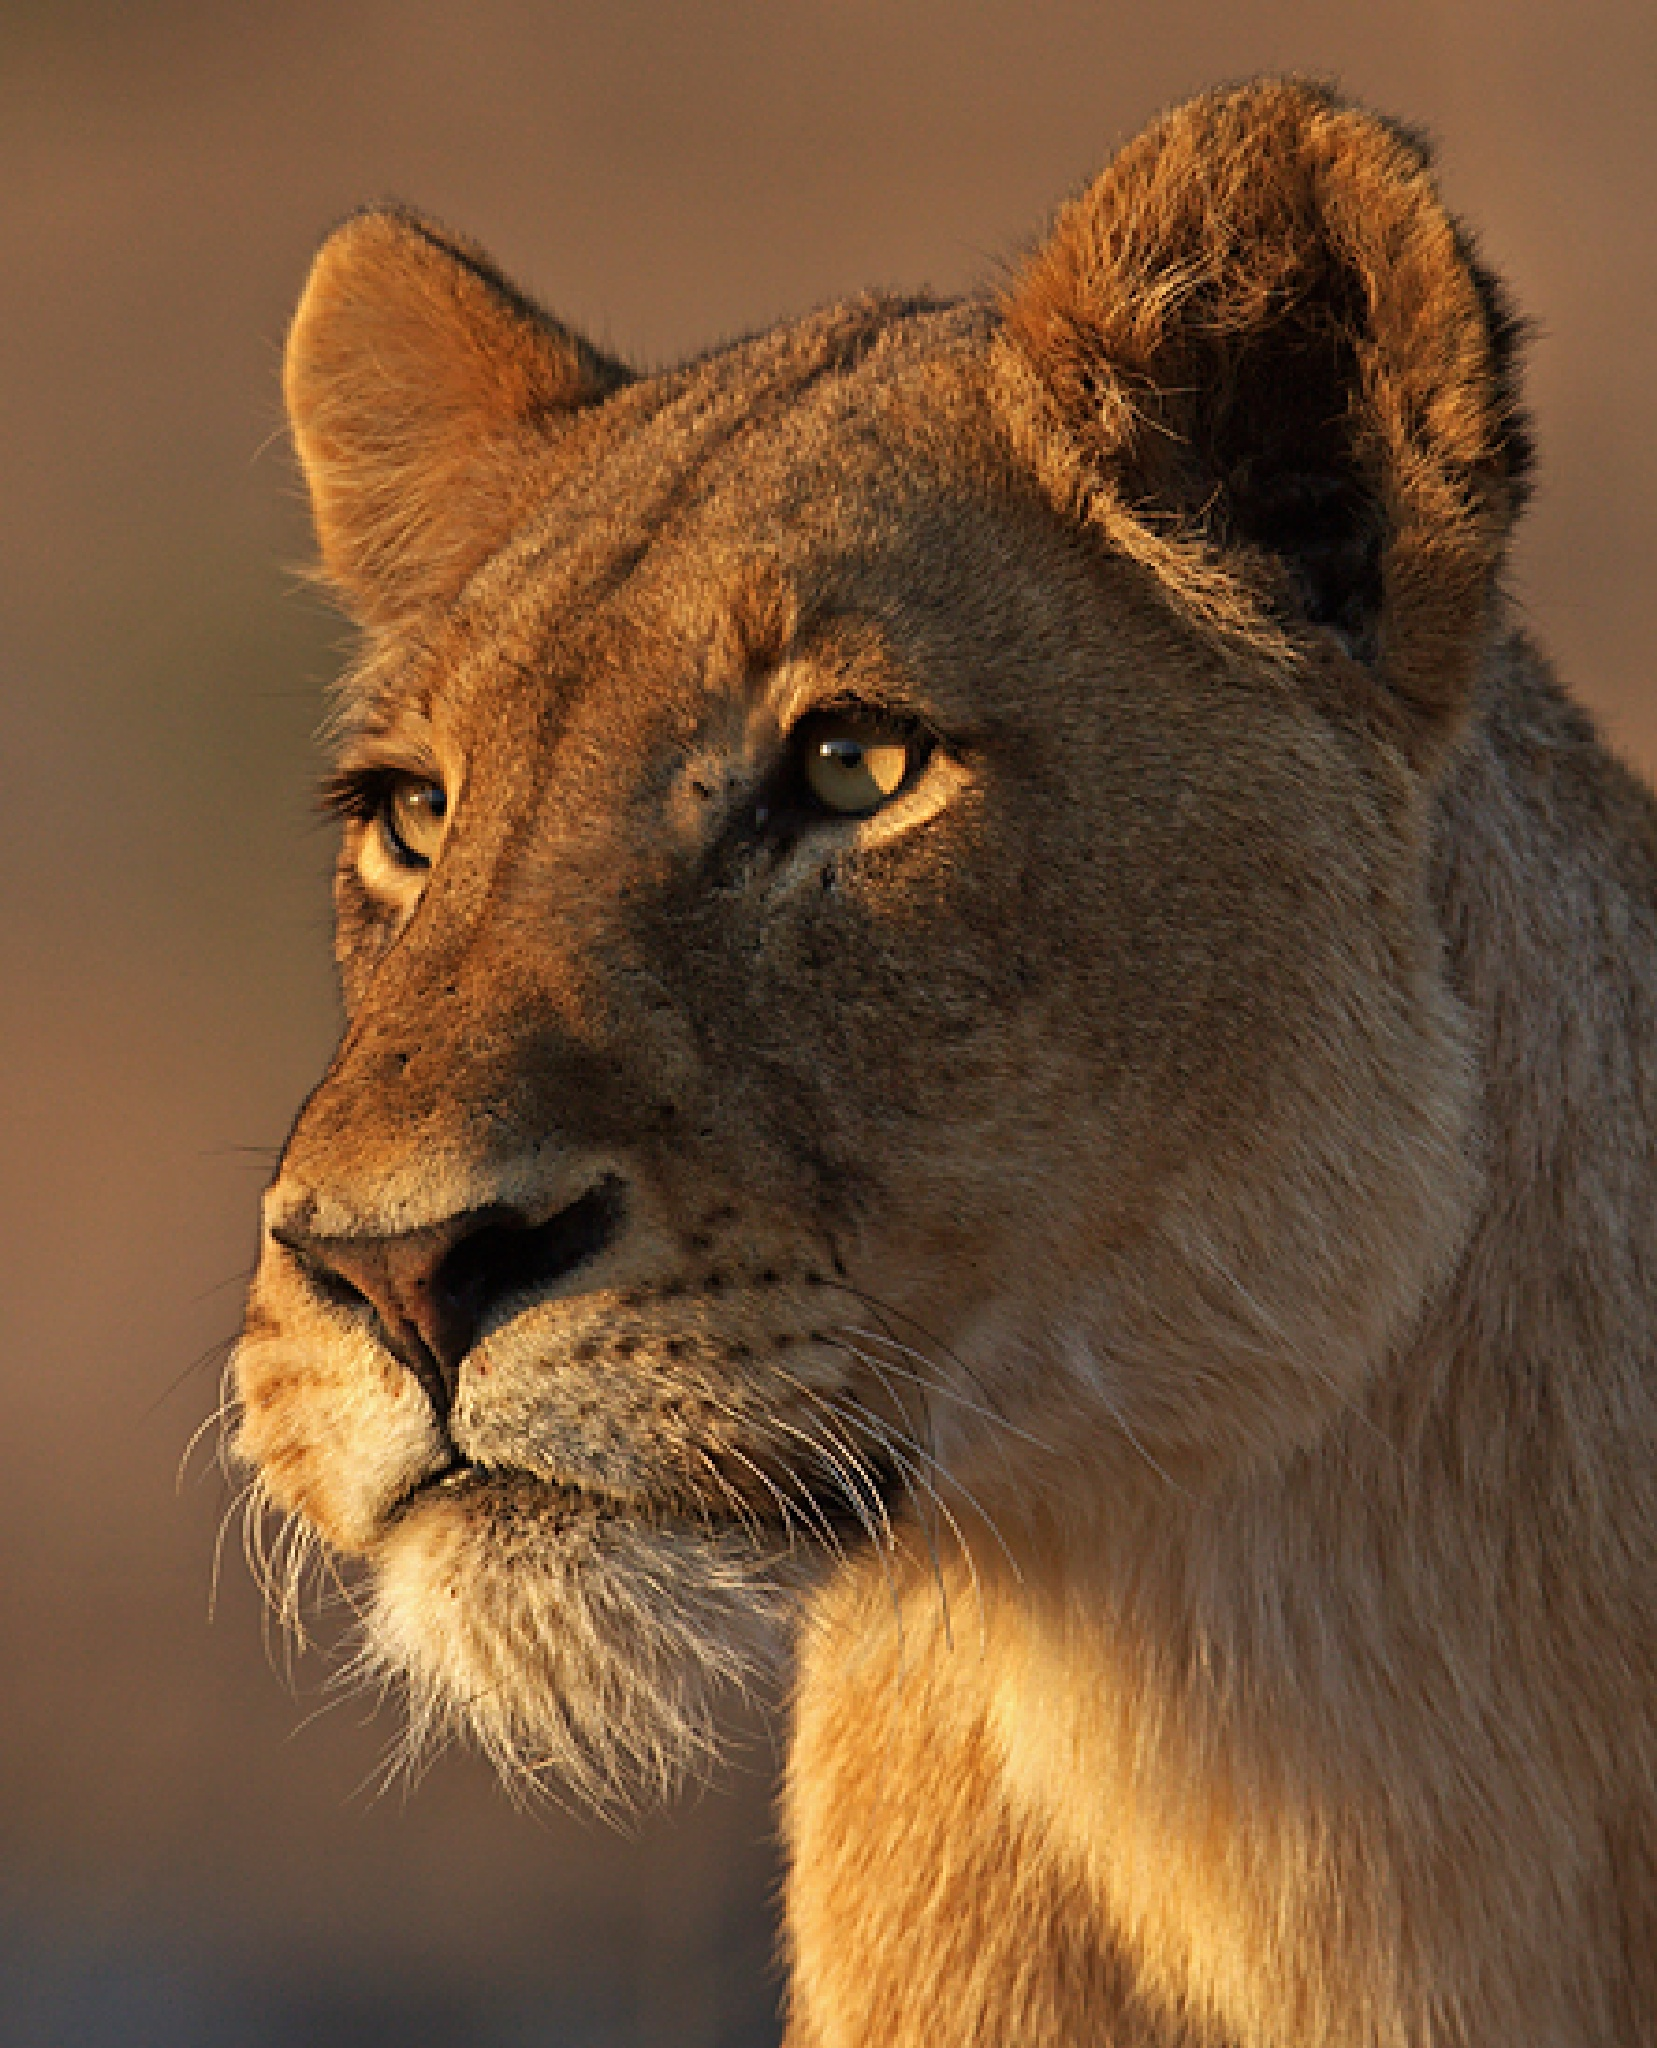 The Lioness by mzrice528